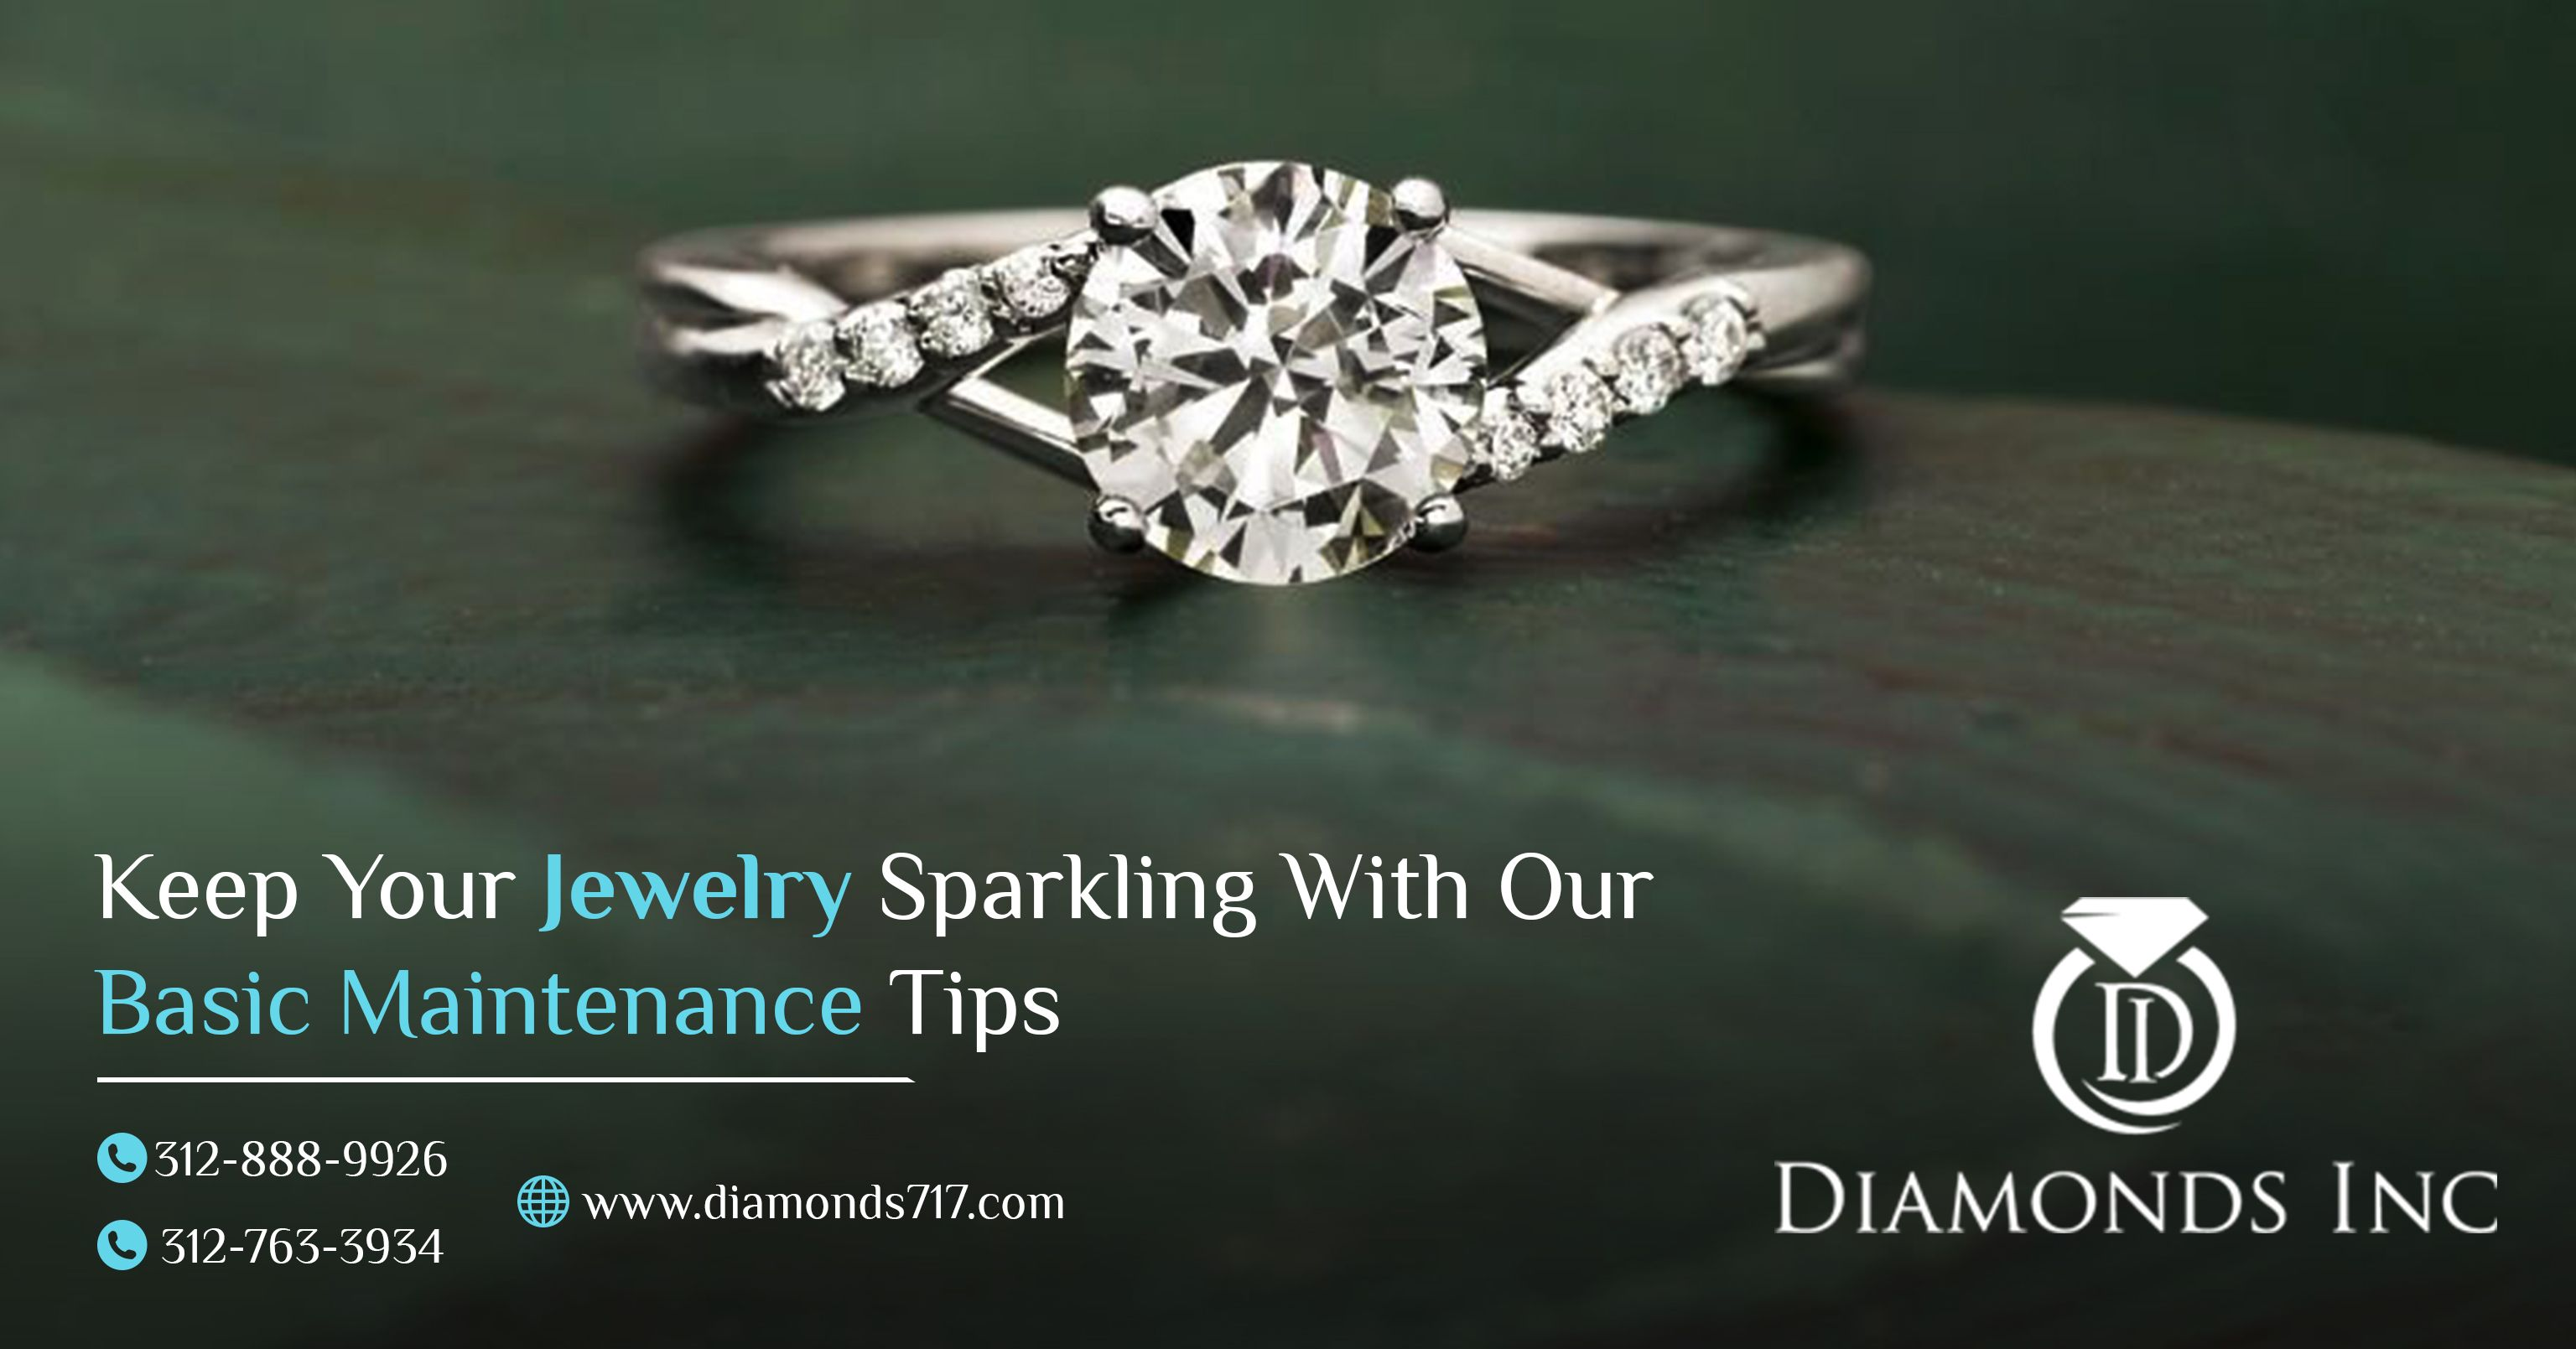 Keep Your Jewelry Sparkling With Our Basic Maintenance Tips